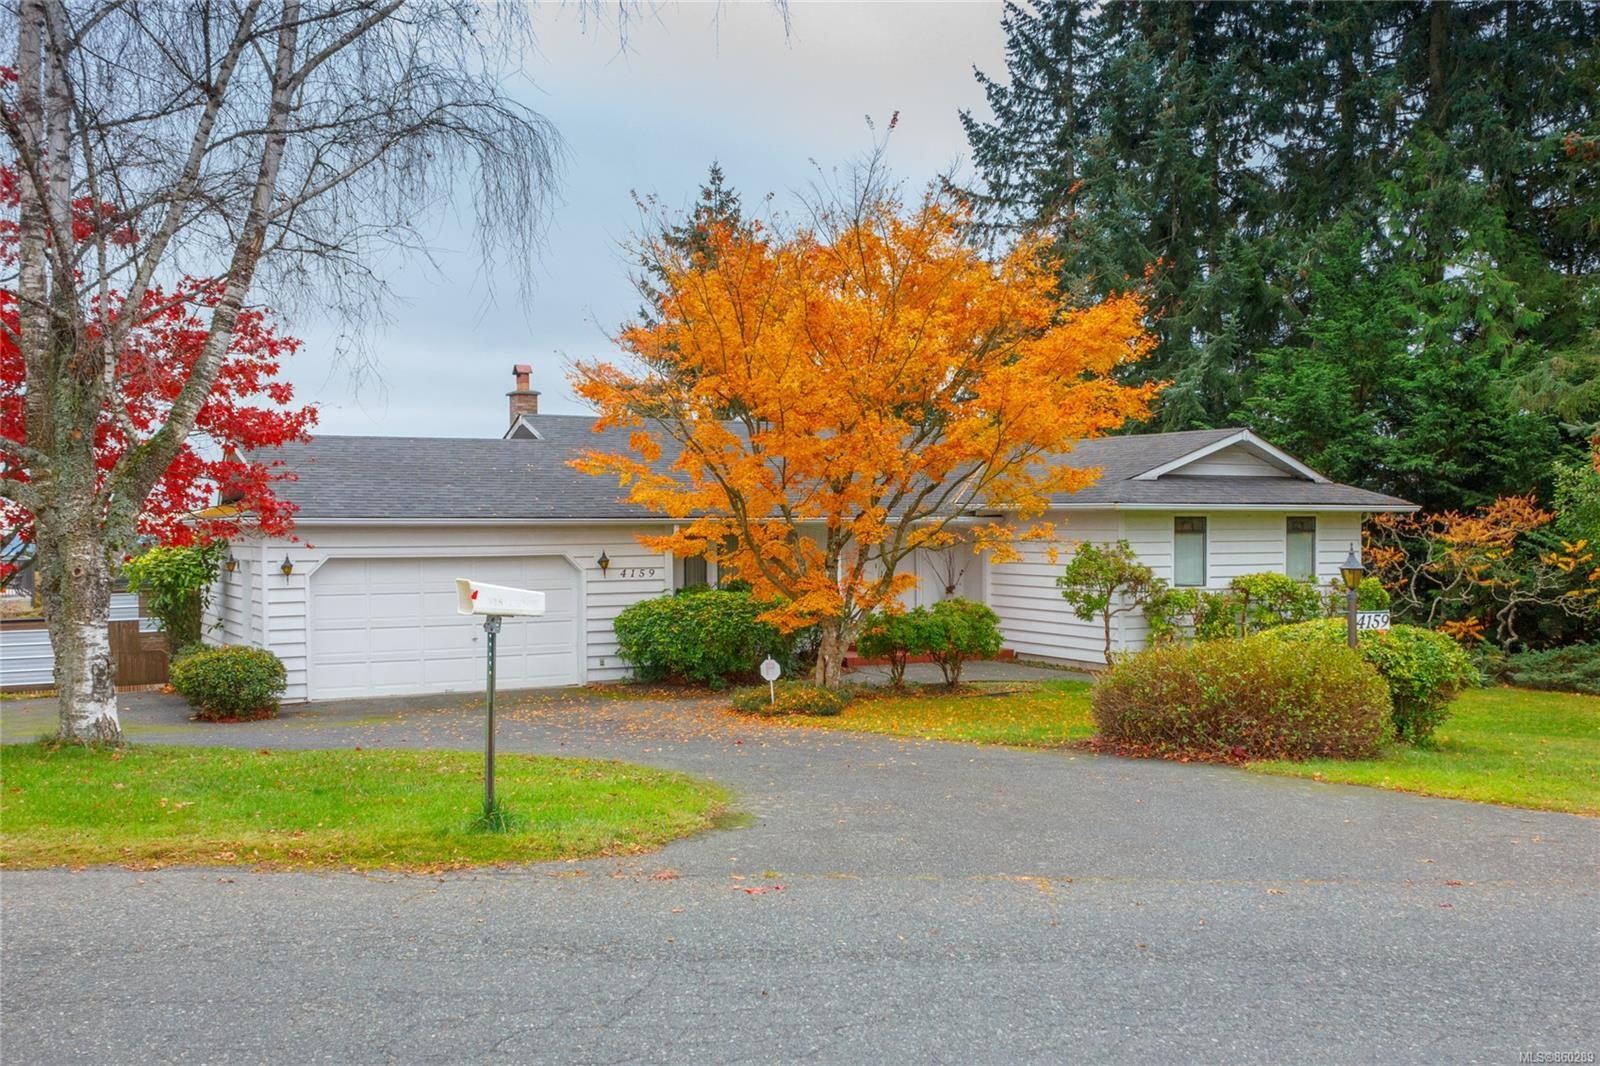 Main Photo: 4159 Judge Dr in : ML Cobble Hill House for sale (Malahat & Area)  : MLS®# 860289